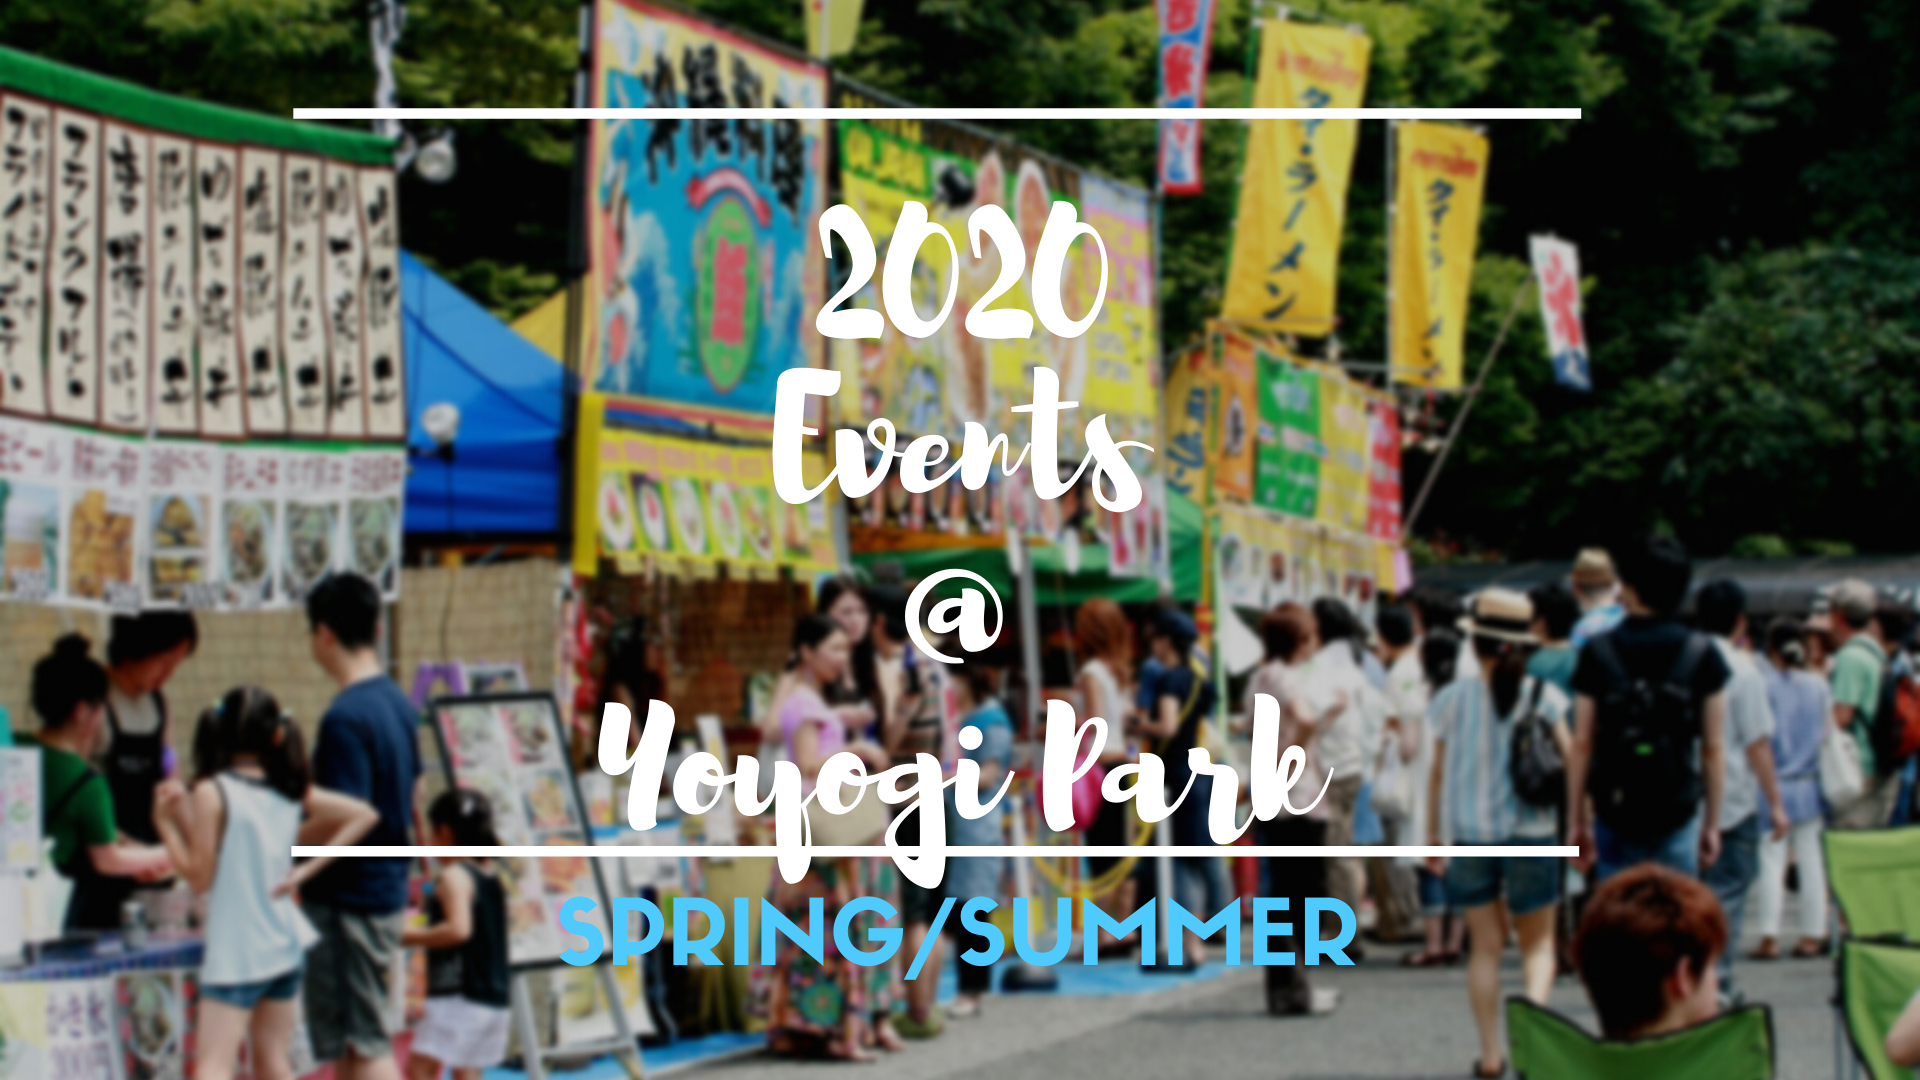 Yoyogi Park's Event Schedule for Spring/Summer 2020!